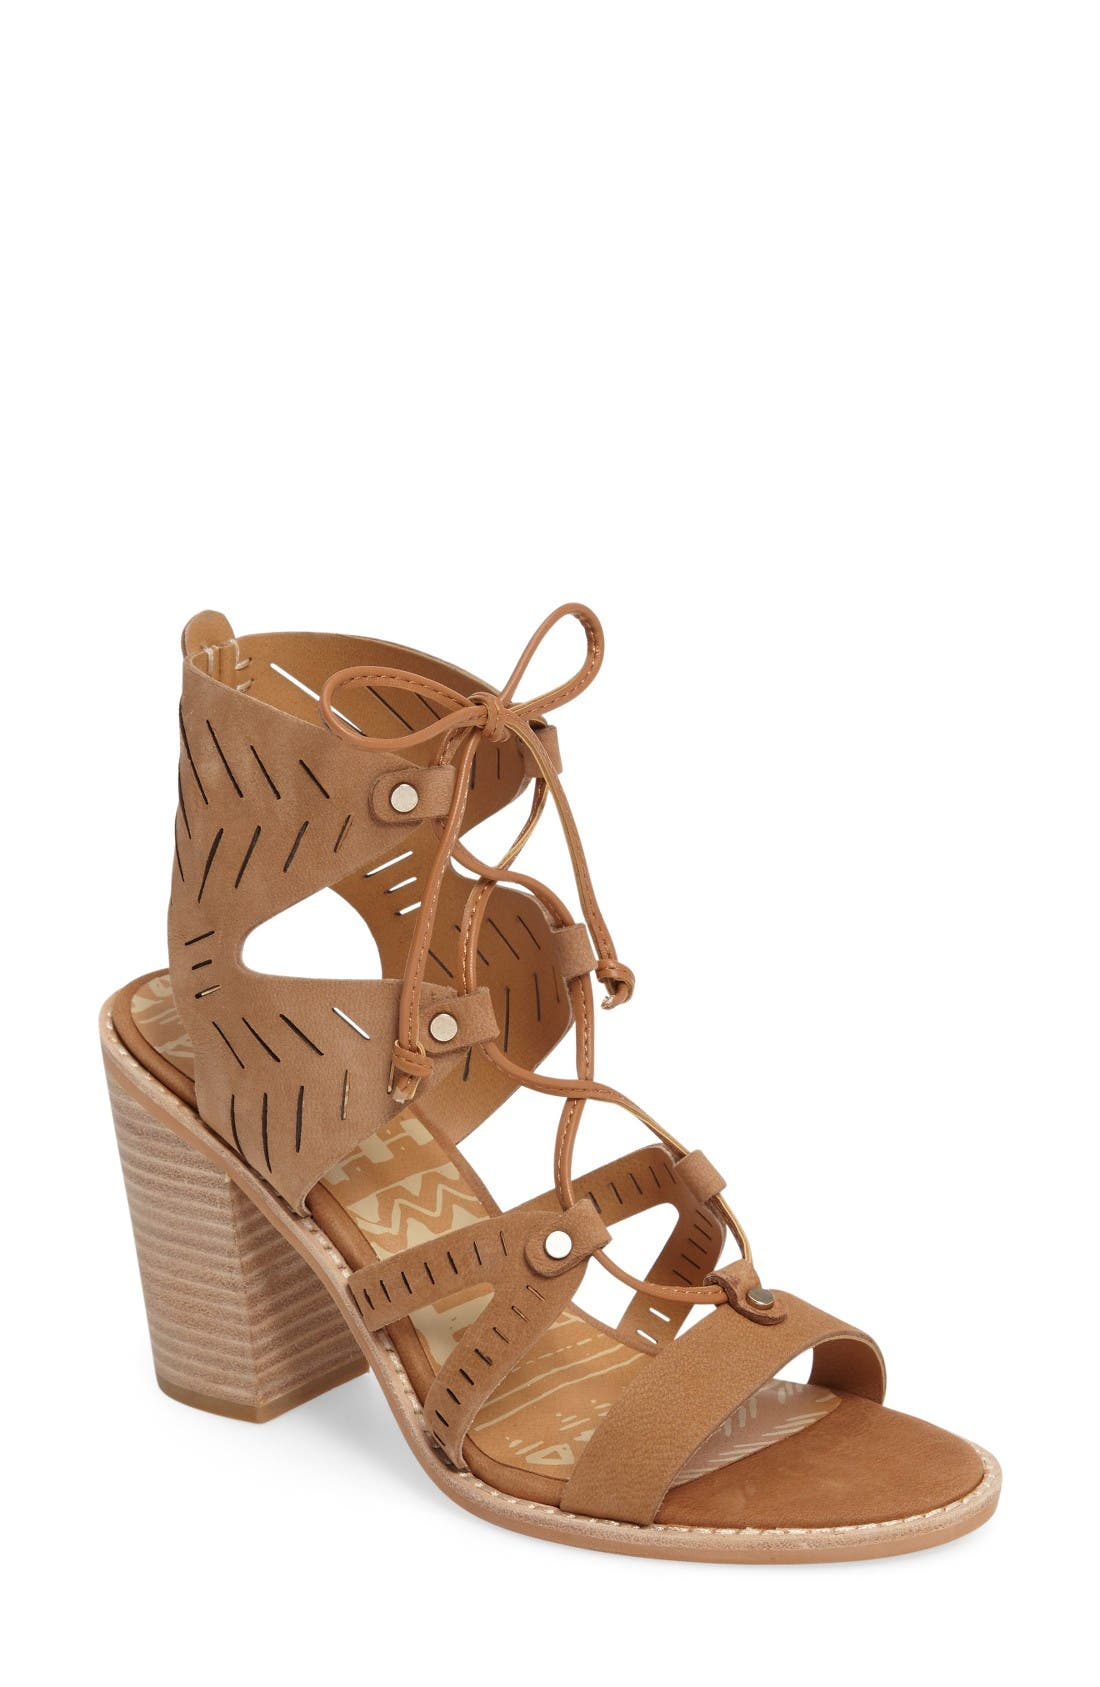 DOLCE VITA Luci Ghillie Lace Sandal